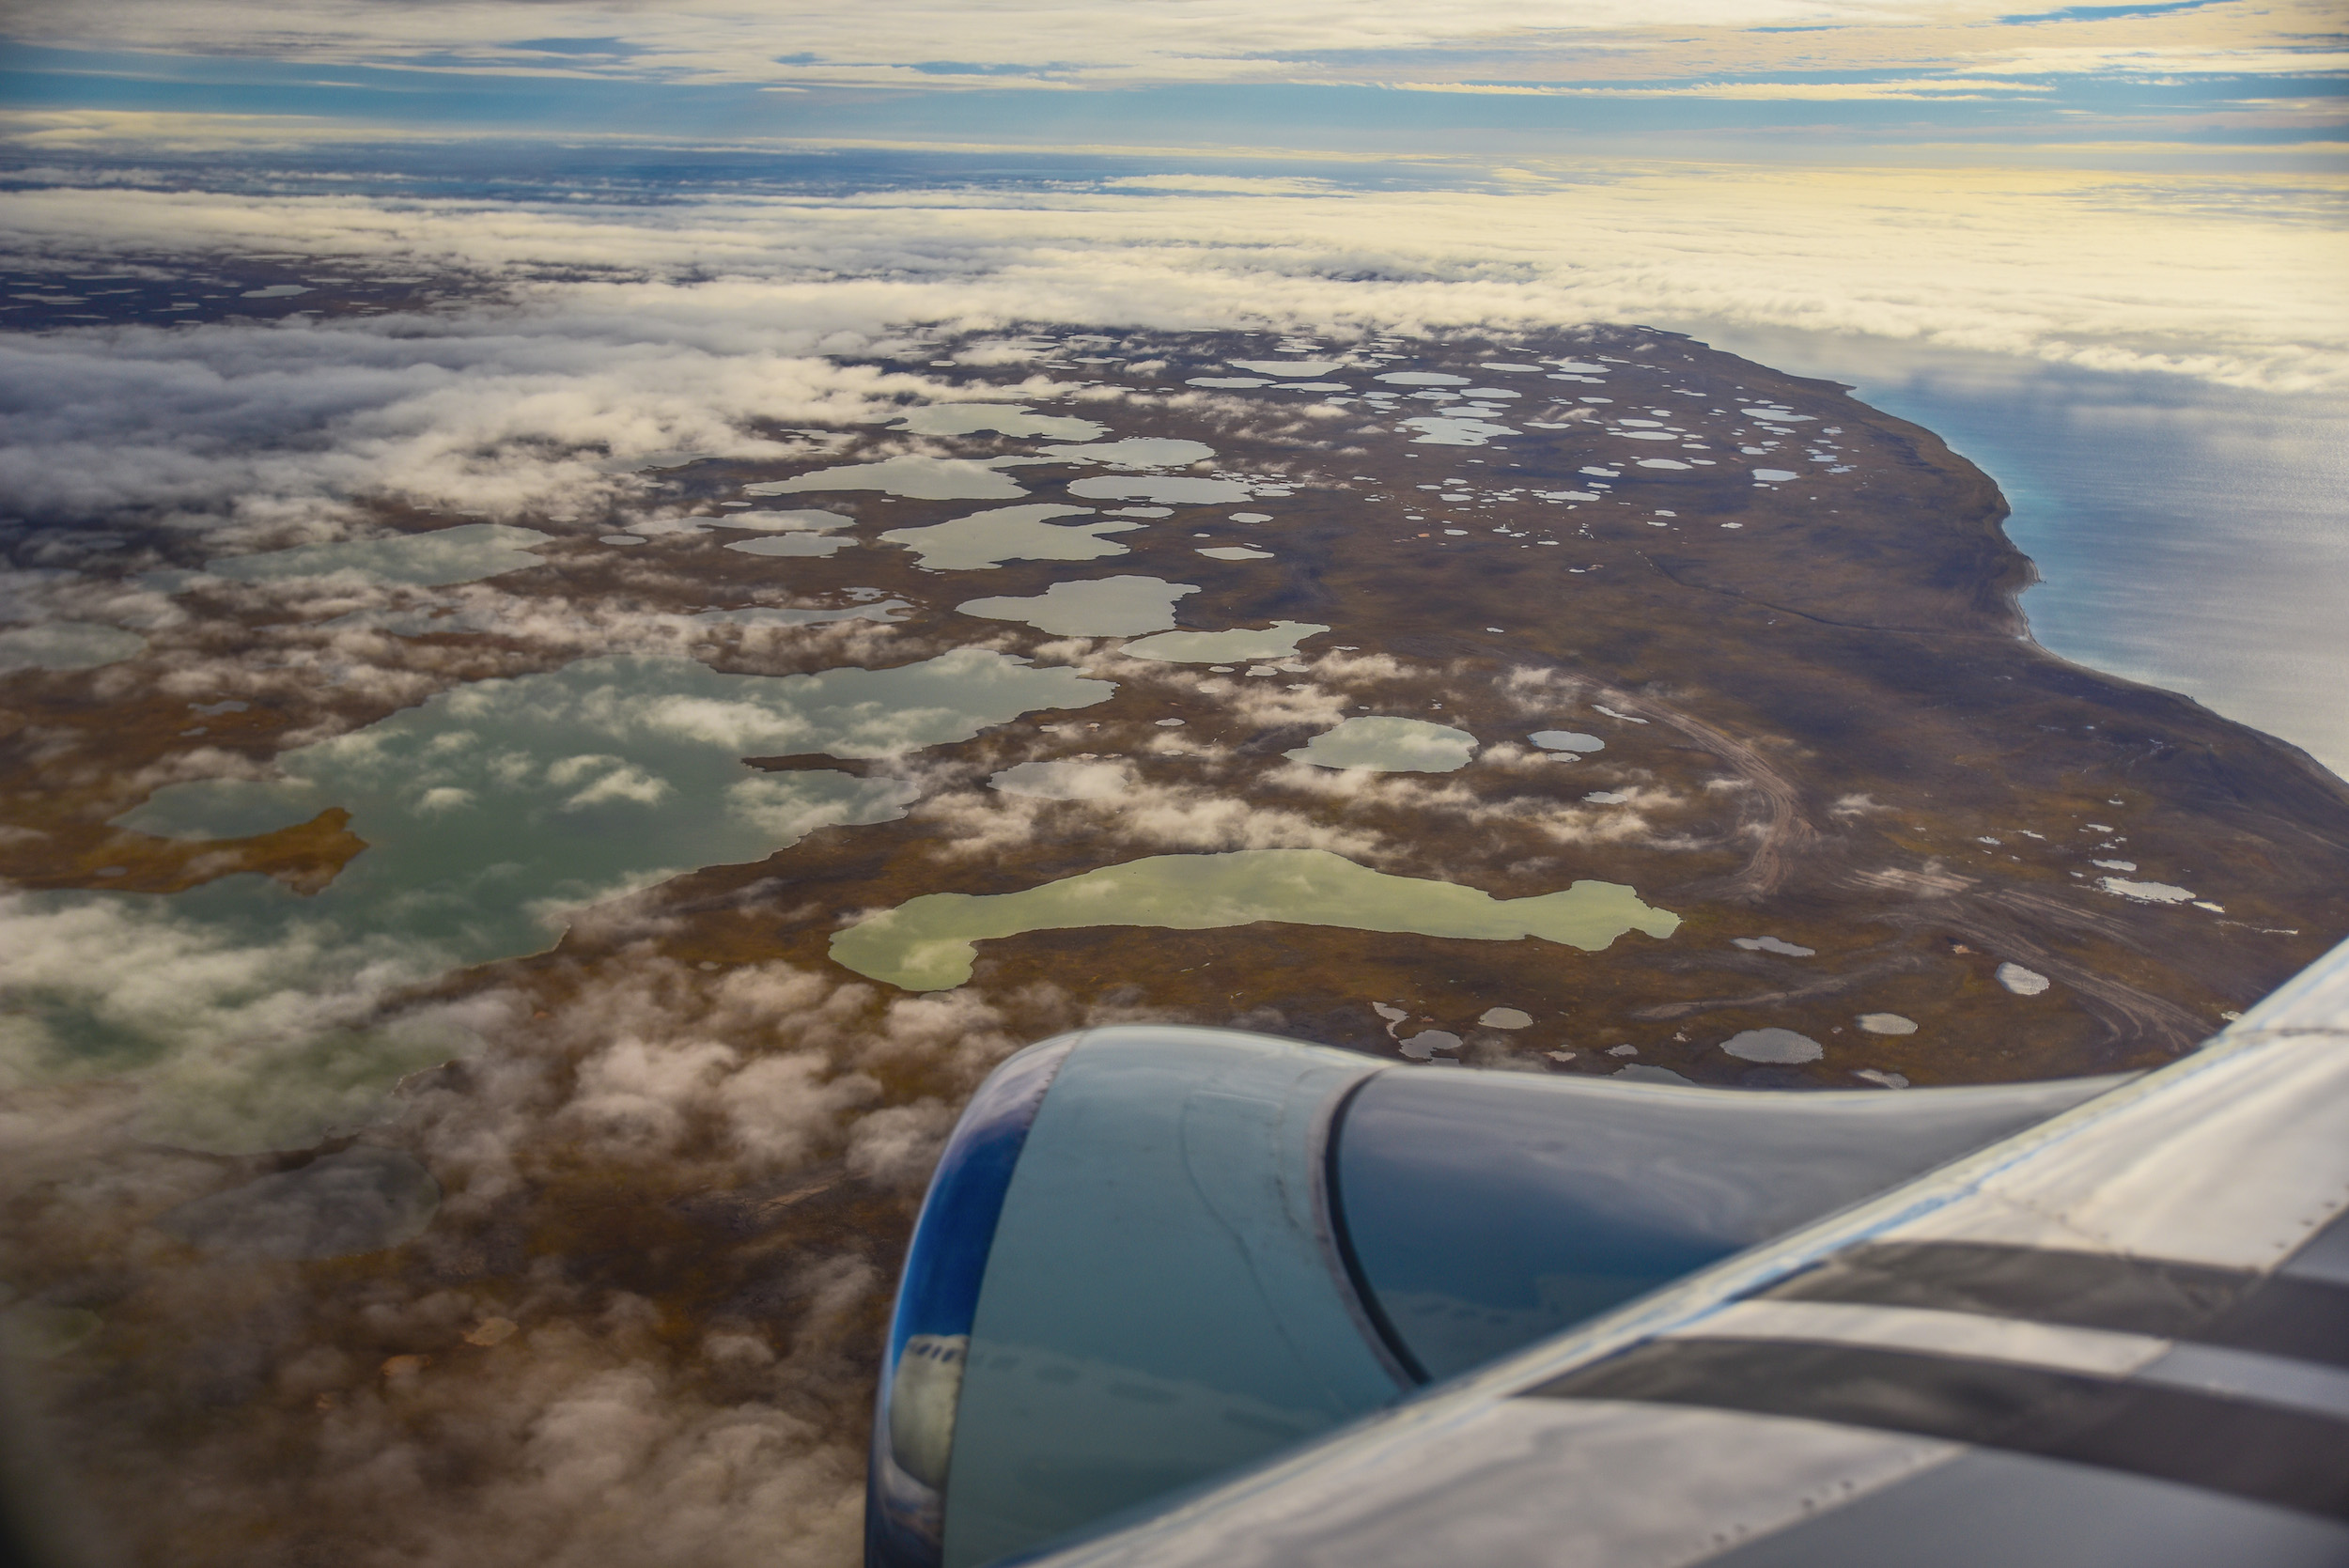 View of an aircraft engine and islands seen through scattered clouds out of an aircraft window